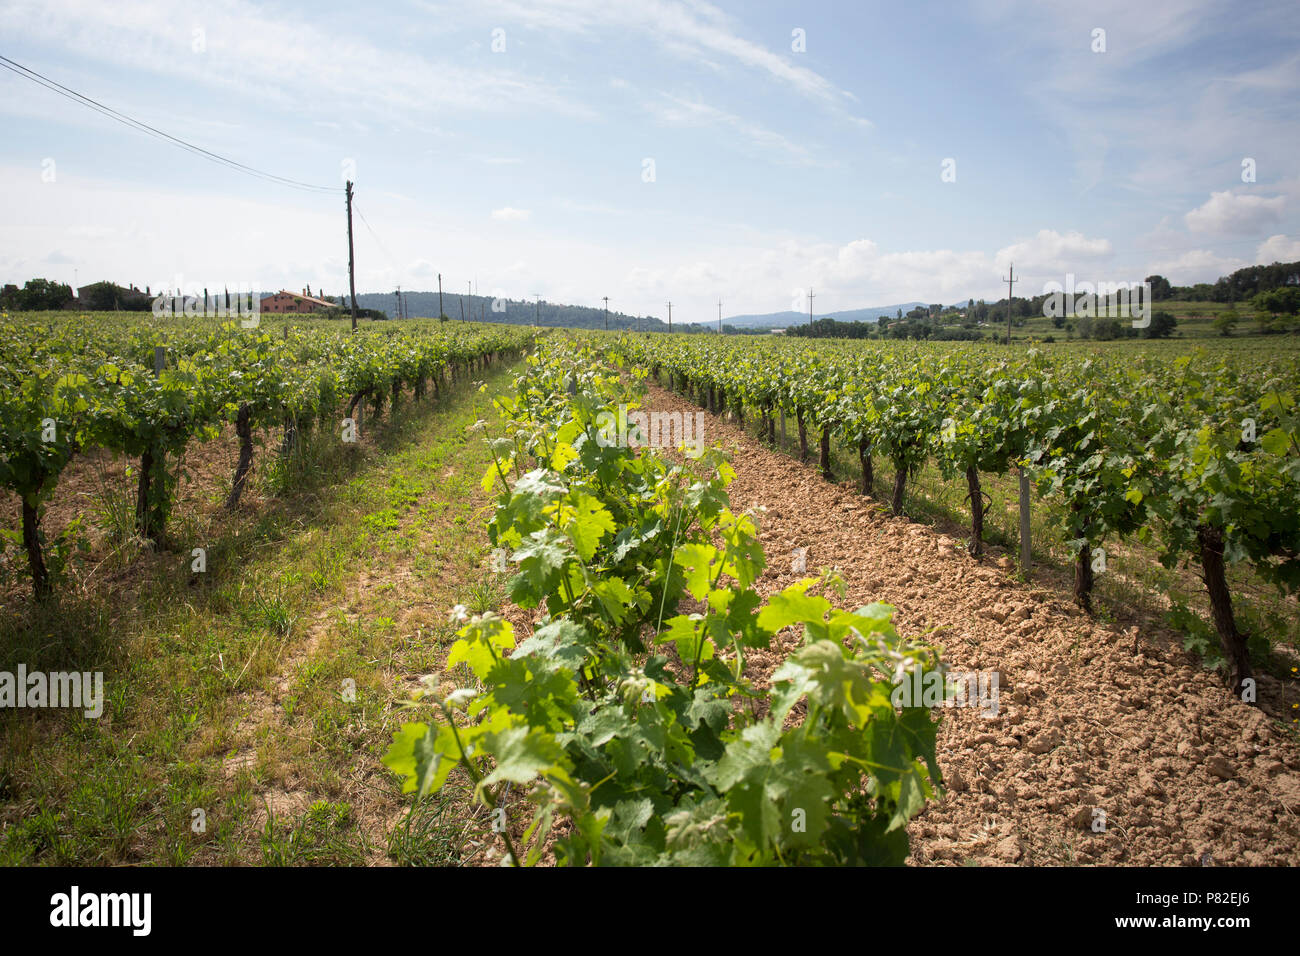 Valley with grape plants for varietal wines - Stock Image